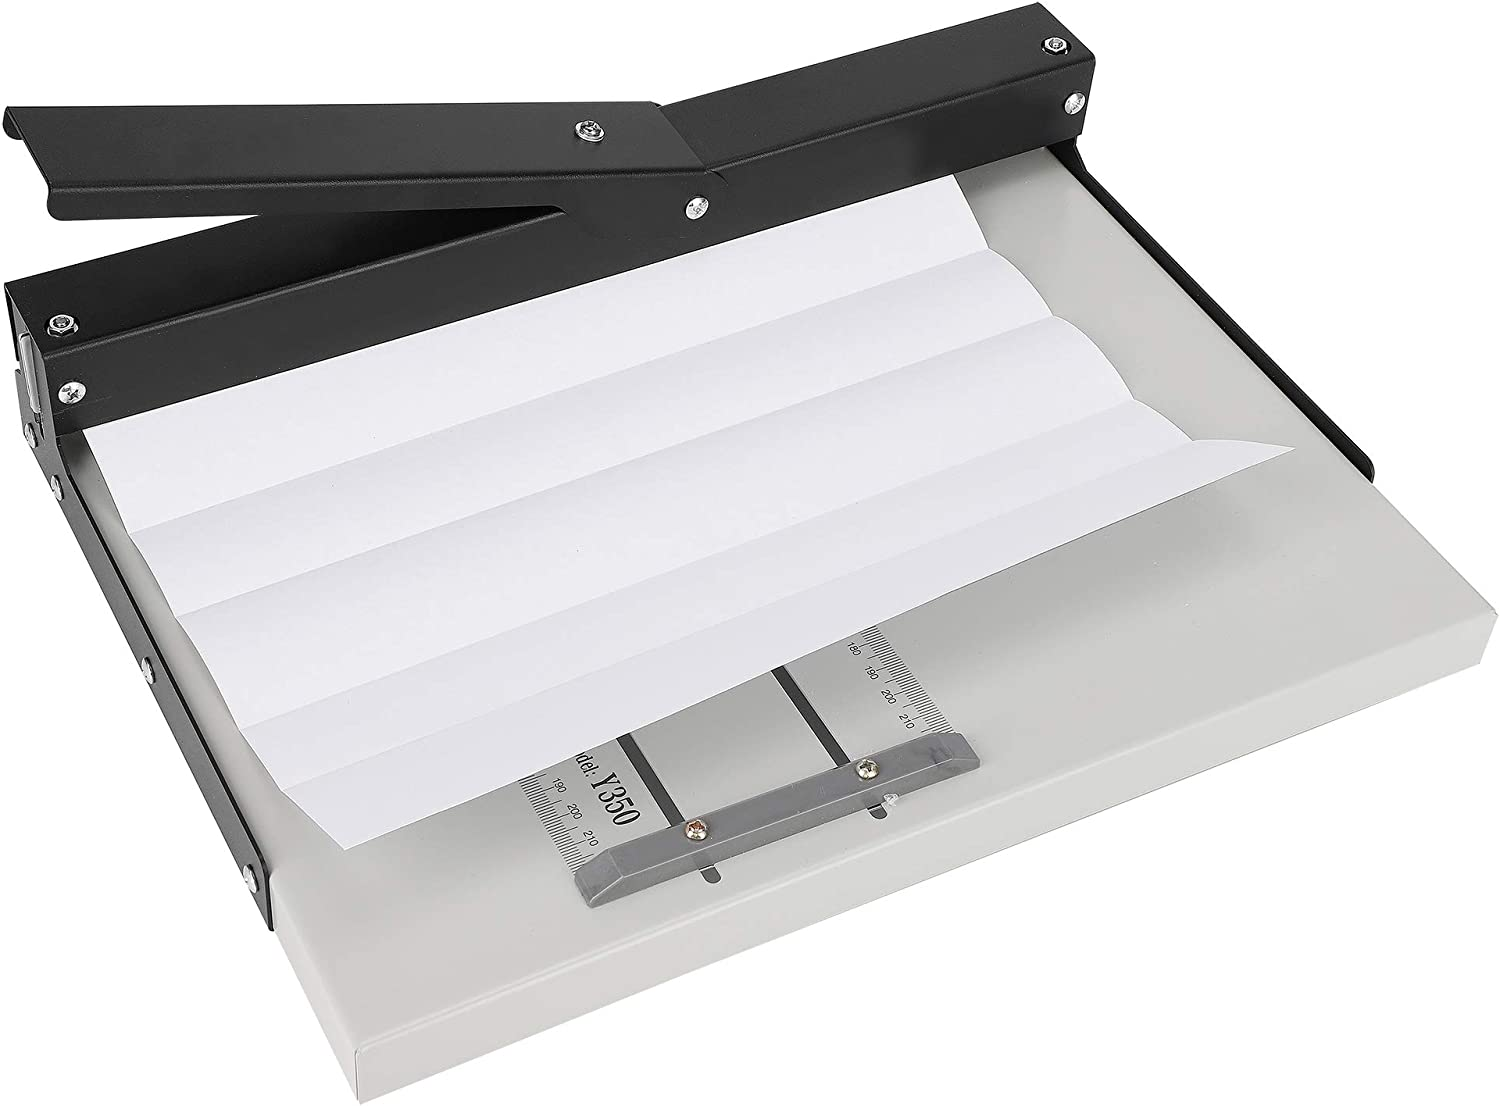 CGOLDENWALL Portable Manual Hand Creasing Cheap mail order Jacksonville Mall specialty store Paper Operated Machine